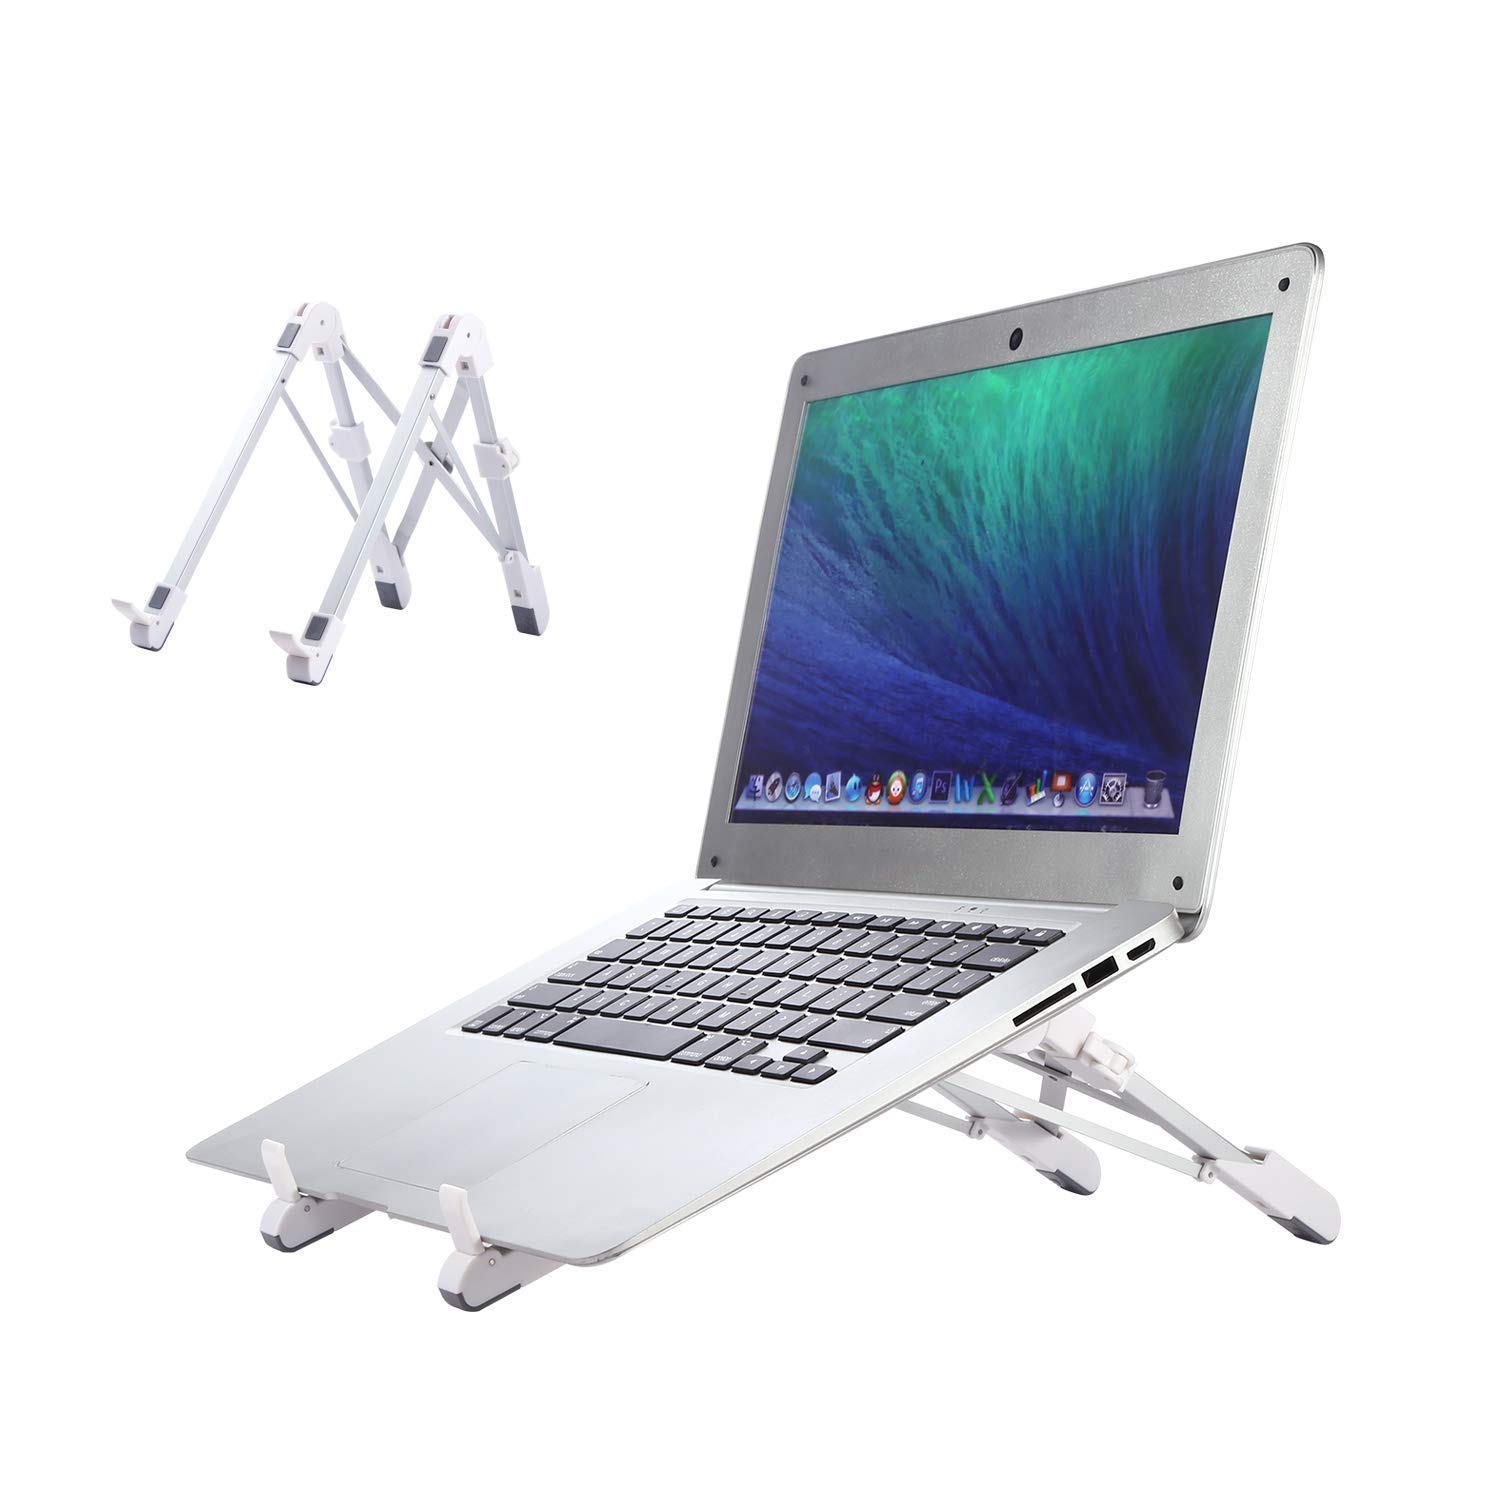 GUSODOR Laptop Stand Adjustable Notebook Holder Ergonomic Folding Portable Ventilated Desktop Tablet Stand with Lightweight & Compact Universal Fit for Most Laptops * White